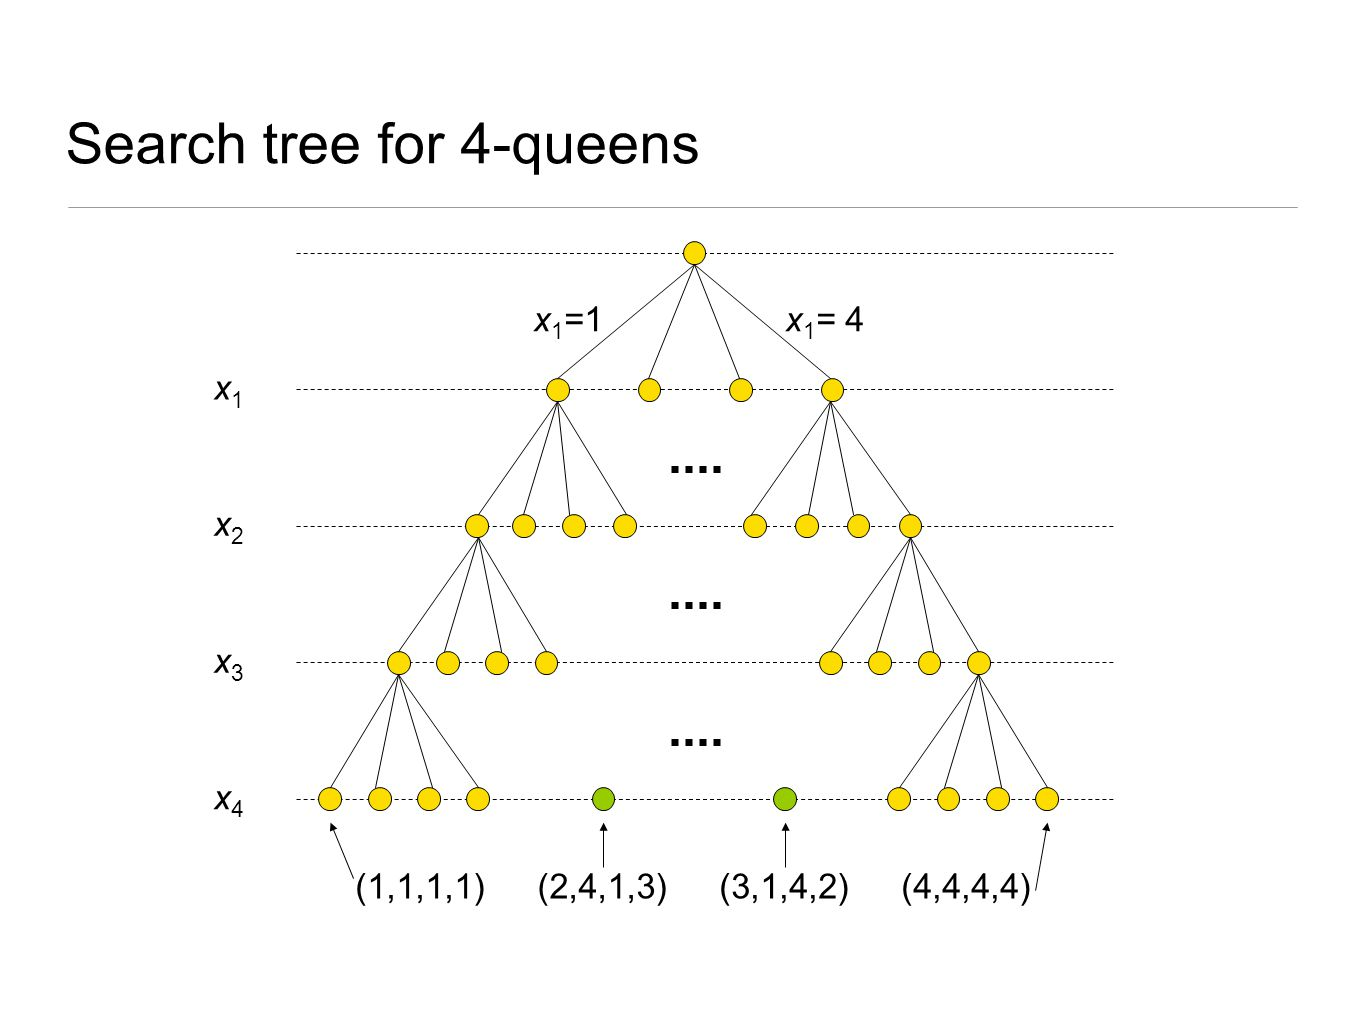 Search tree for 4-queens